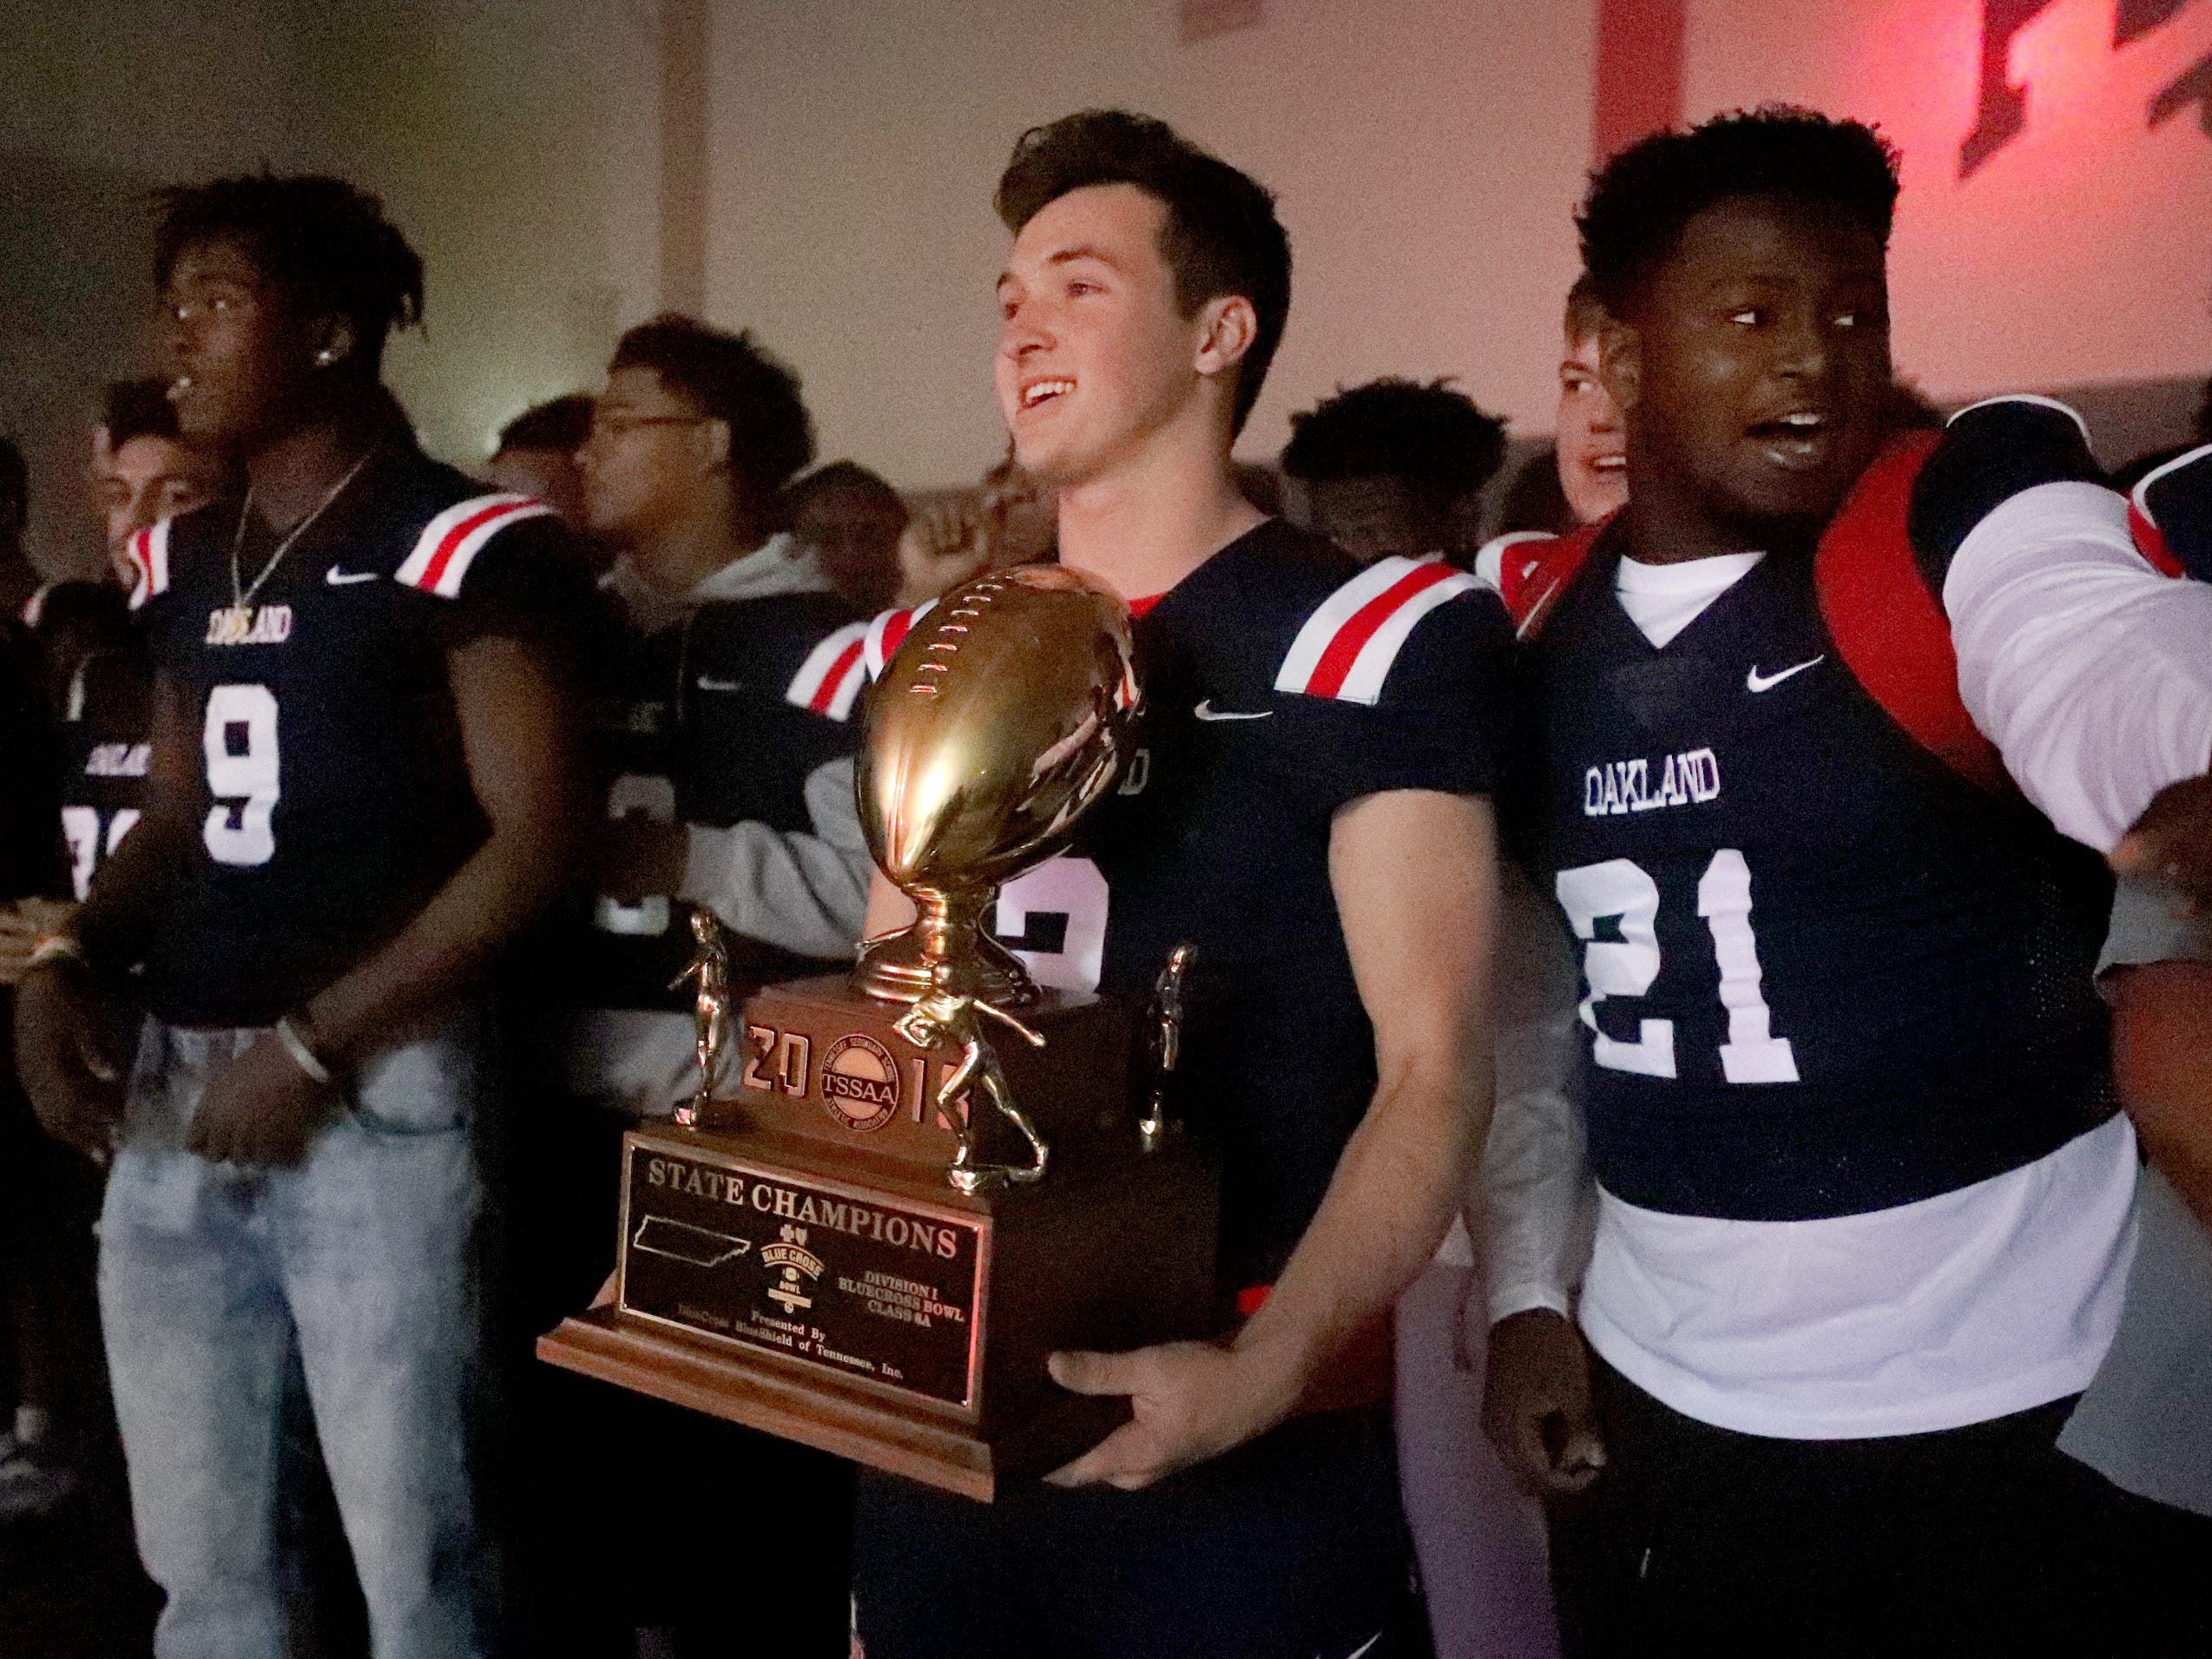 Oakland High School holds a pep rally, on Monday, Dec. 3, 2018 at the school after the football team won the 6A State Championship BlueCross Bowl game against Westhaven on Thursday.